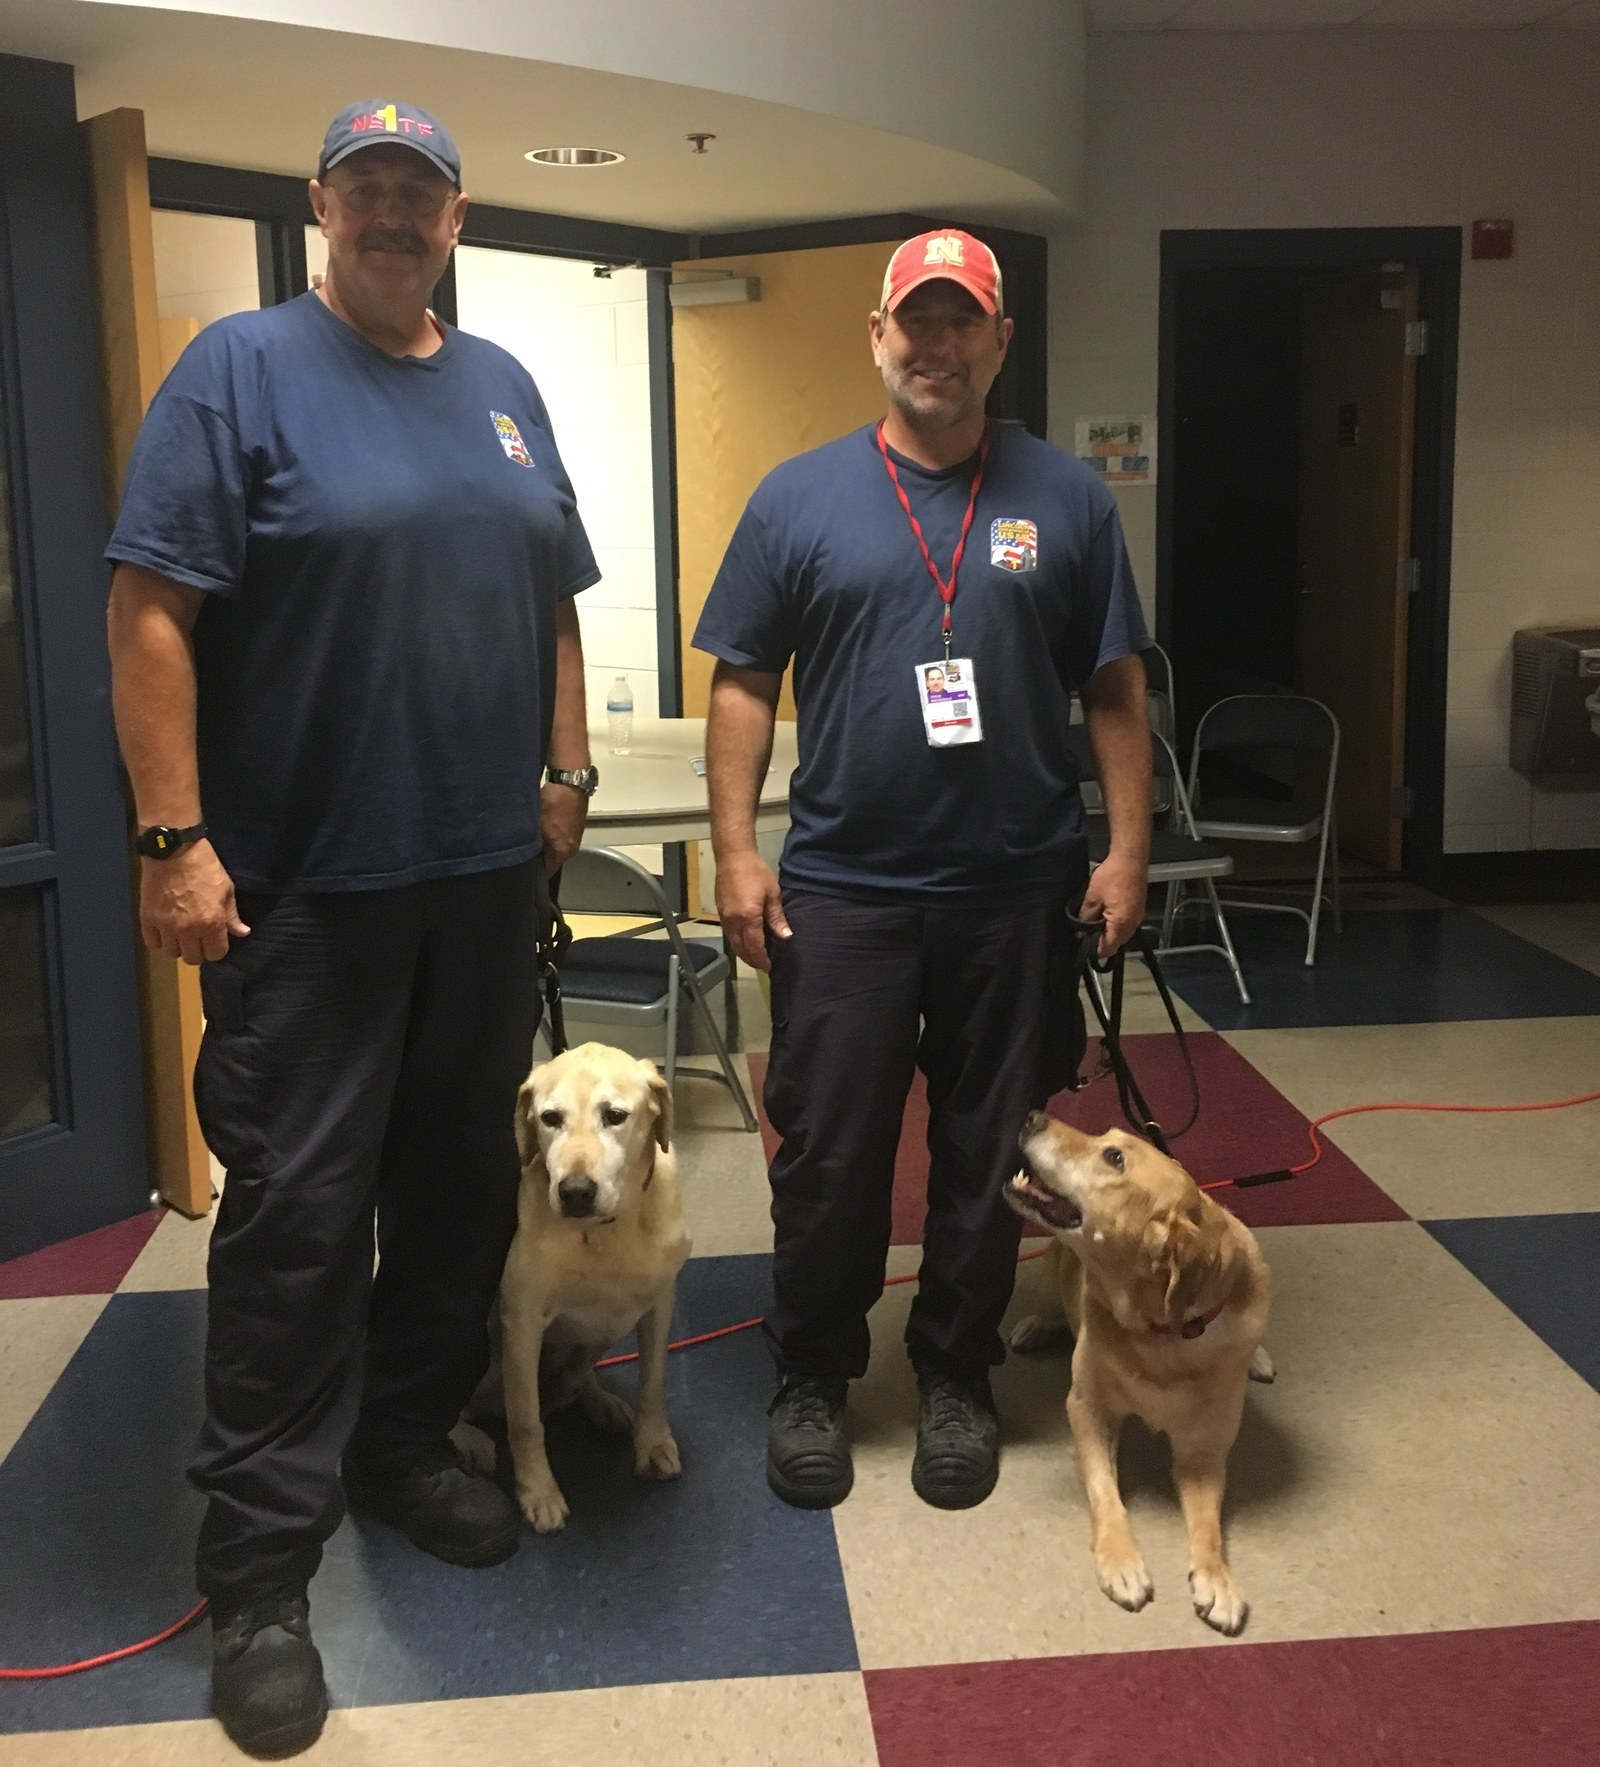 The FEMA rescue team dog handlers and their search dogs. Mark Schroeder and 9-year-old Noah are on the left; Steve MacDonald and 7-year-old Lilly are on the right.